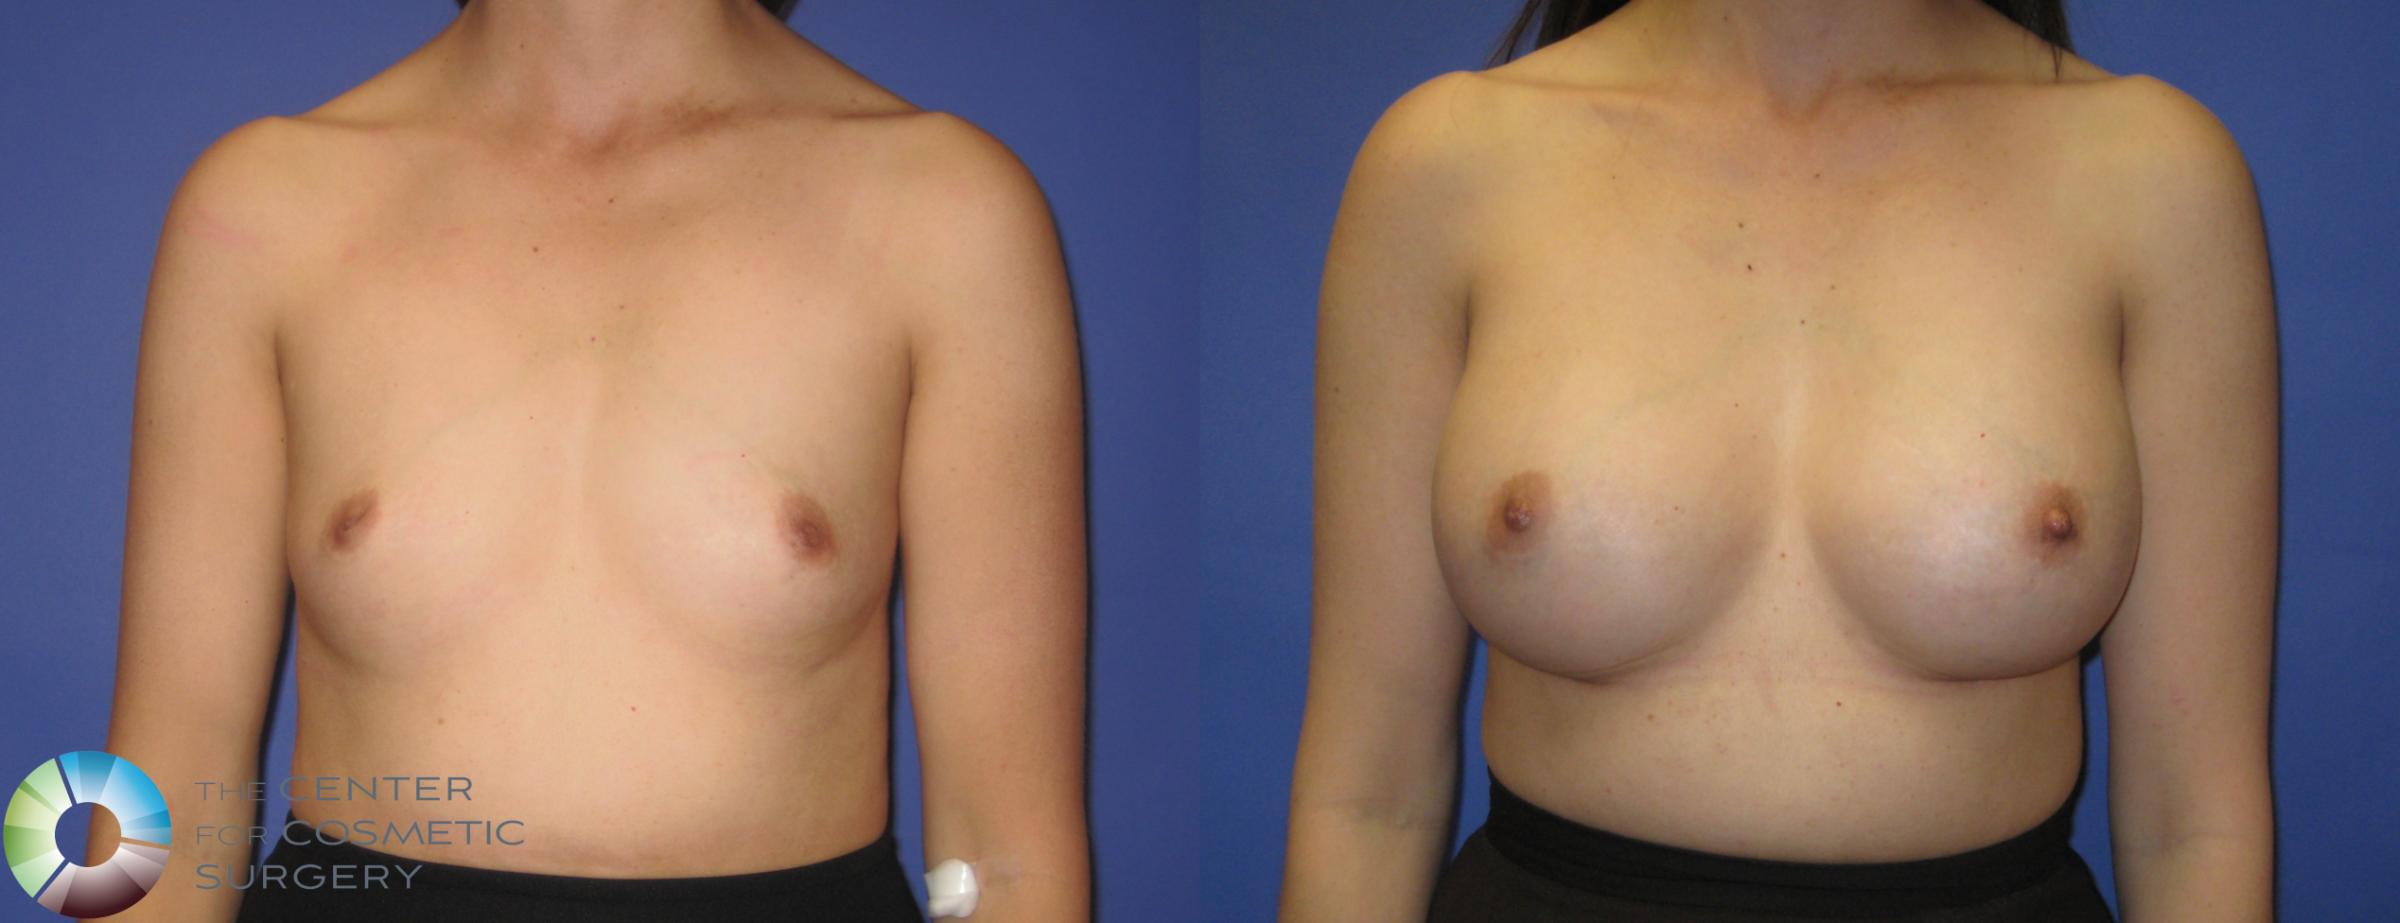 Breast Augmentation Case 290 Before & After View #1 | Golden, CO | The Center for Cosmetic Surgery